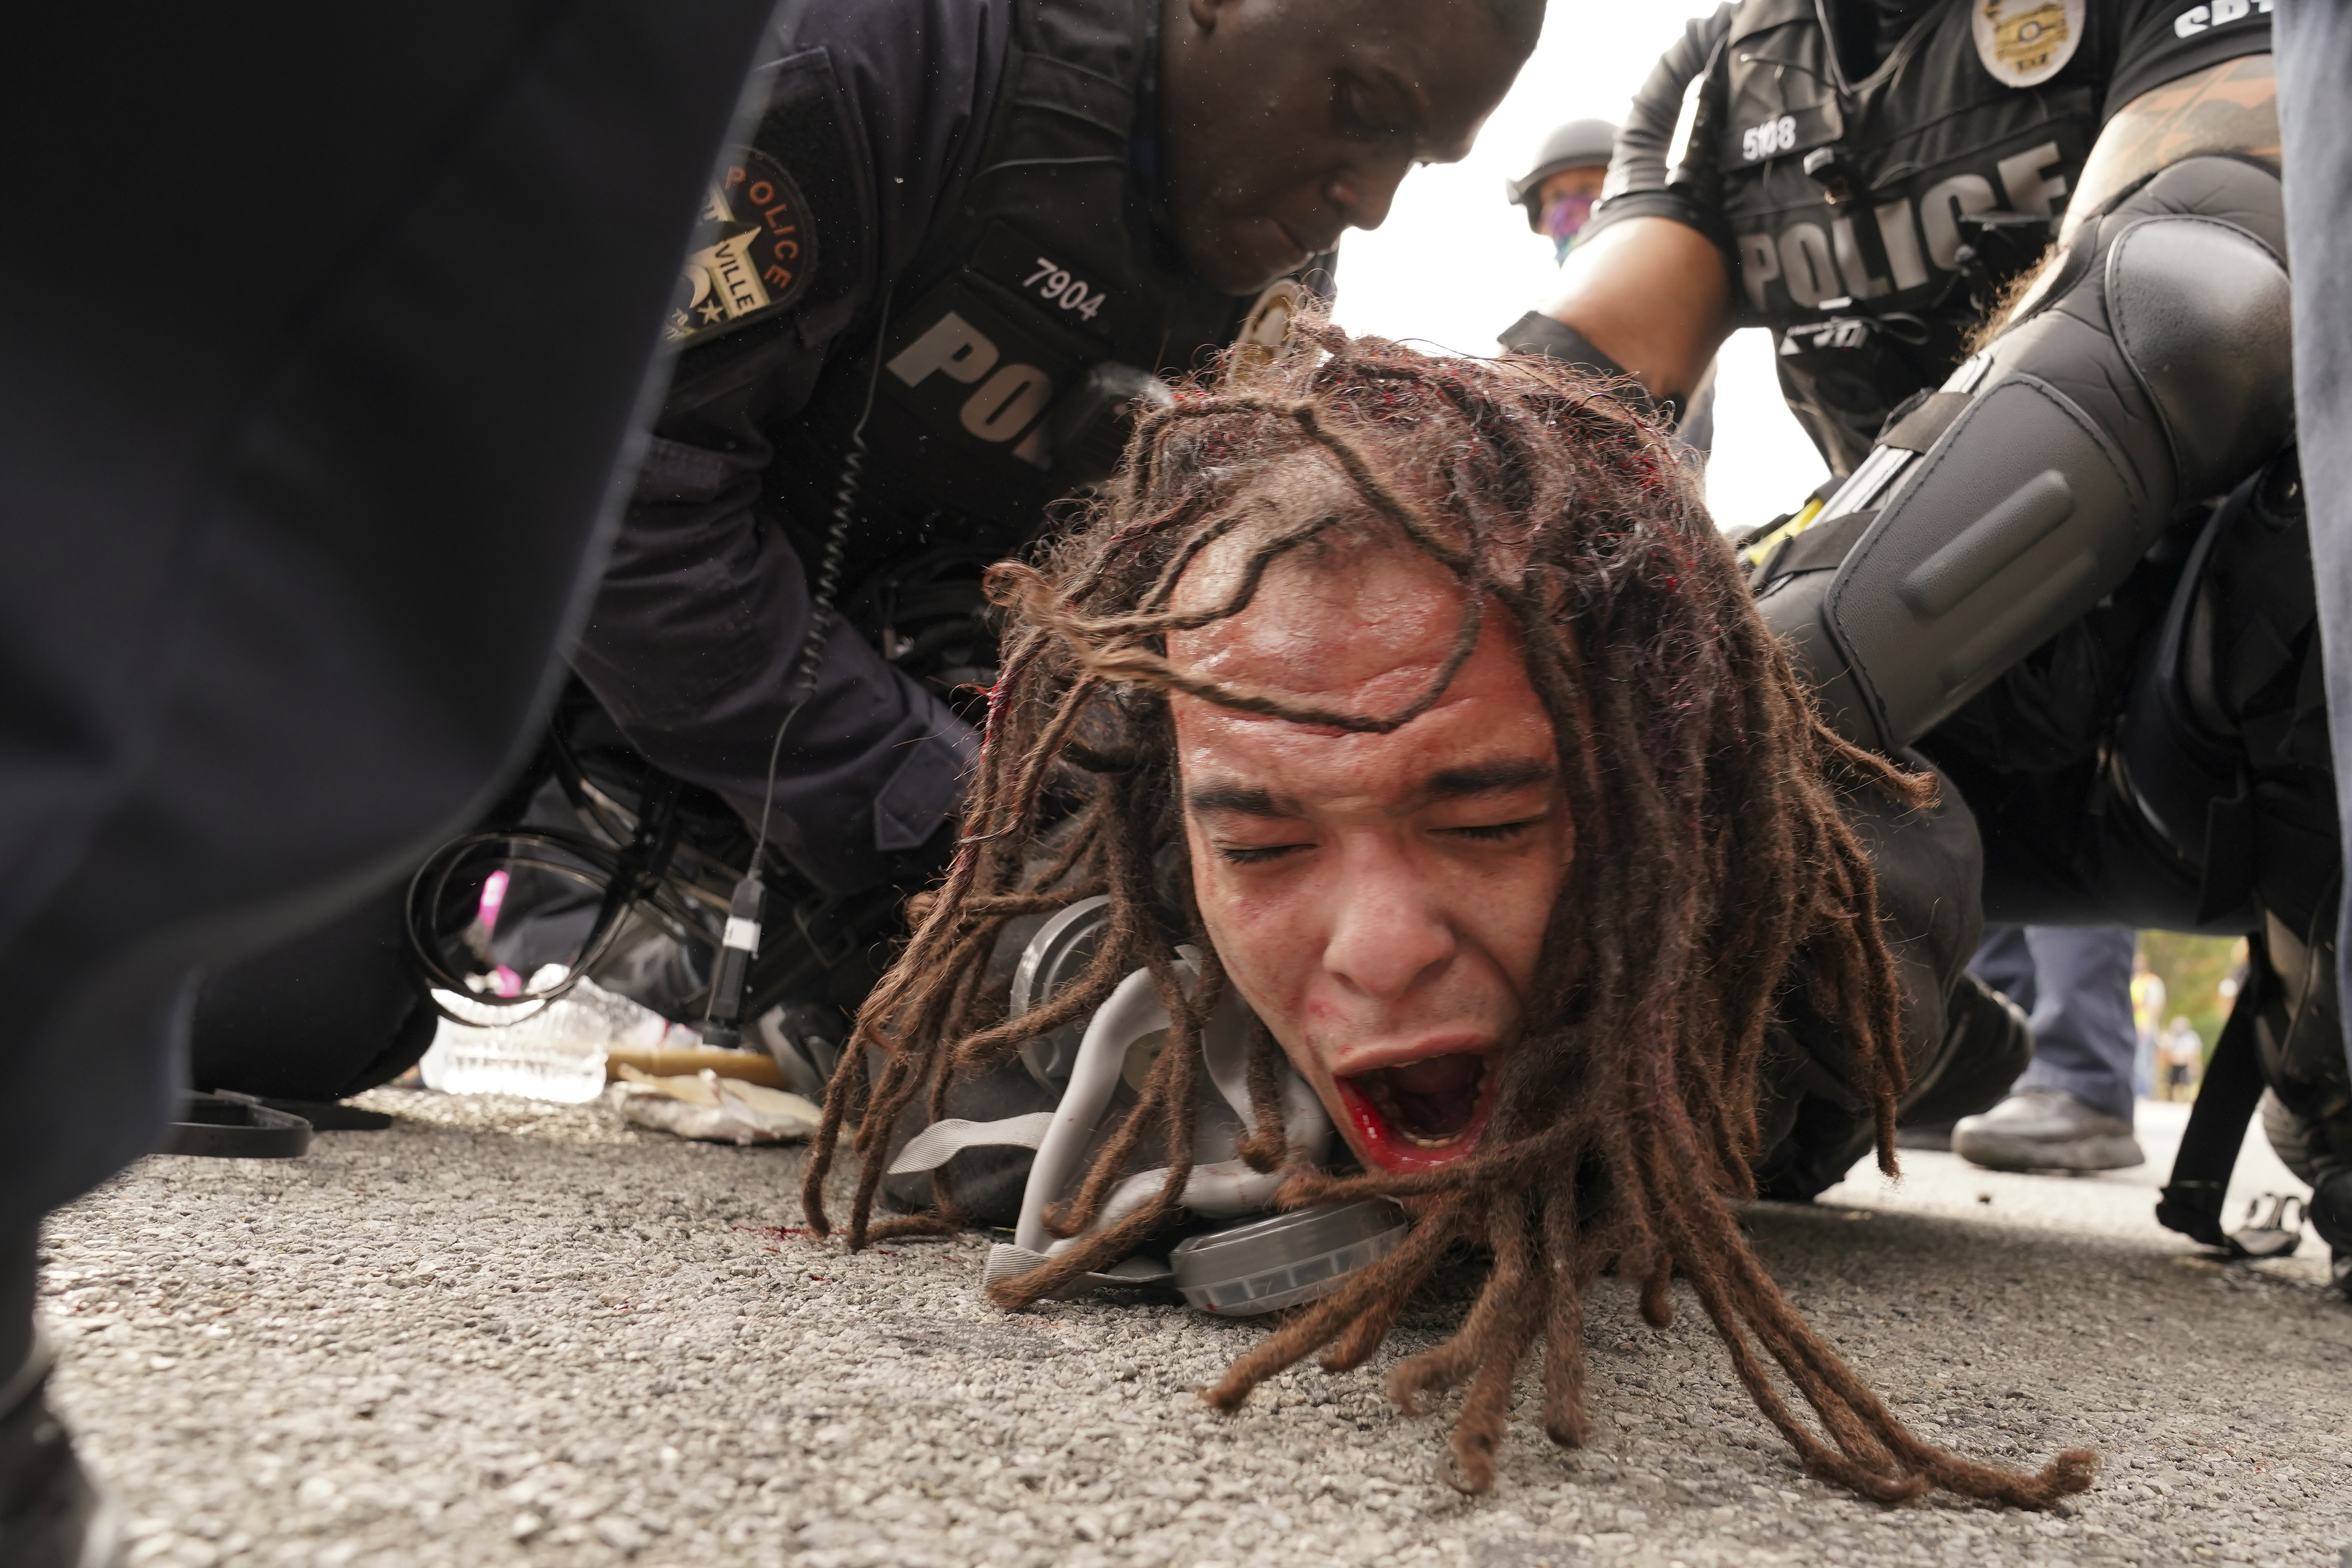 In Pictures: Protests in US after Breonna Taylor decision thumbnail